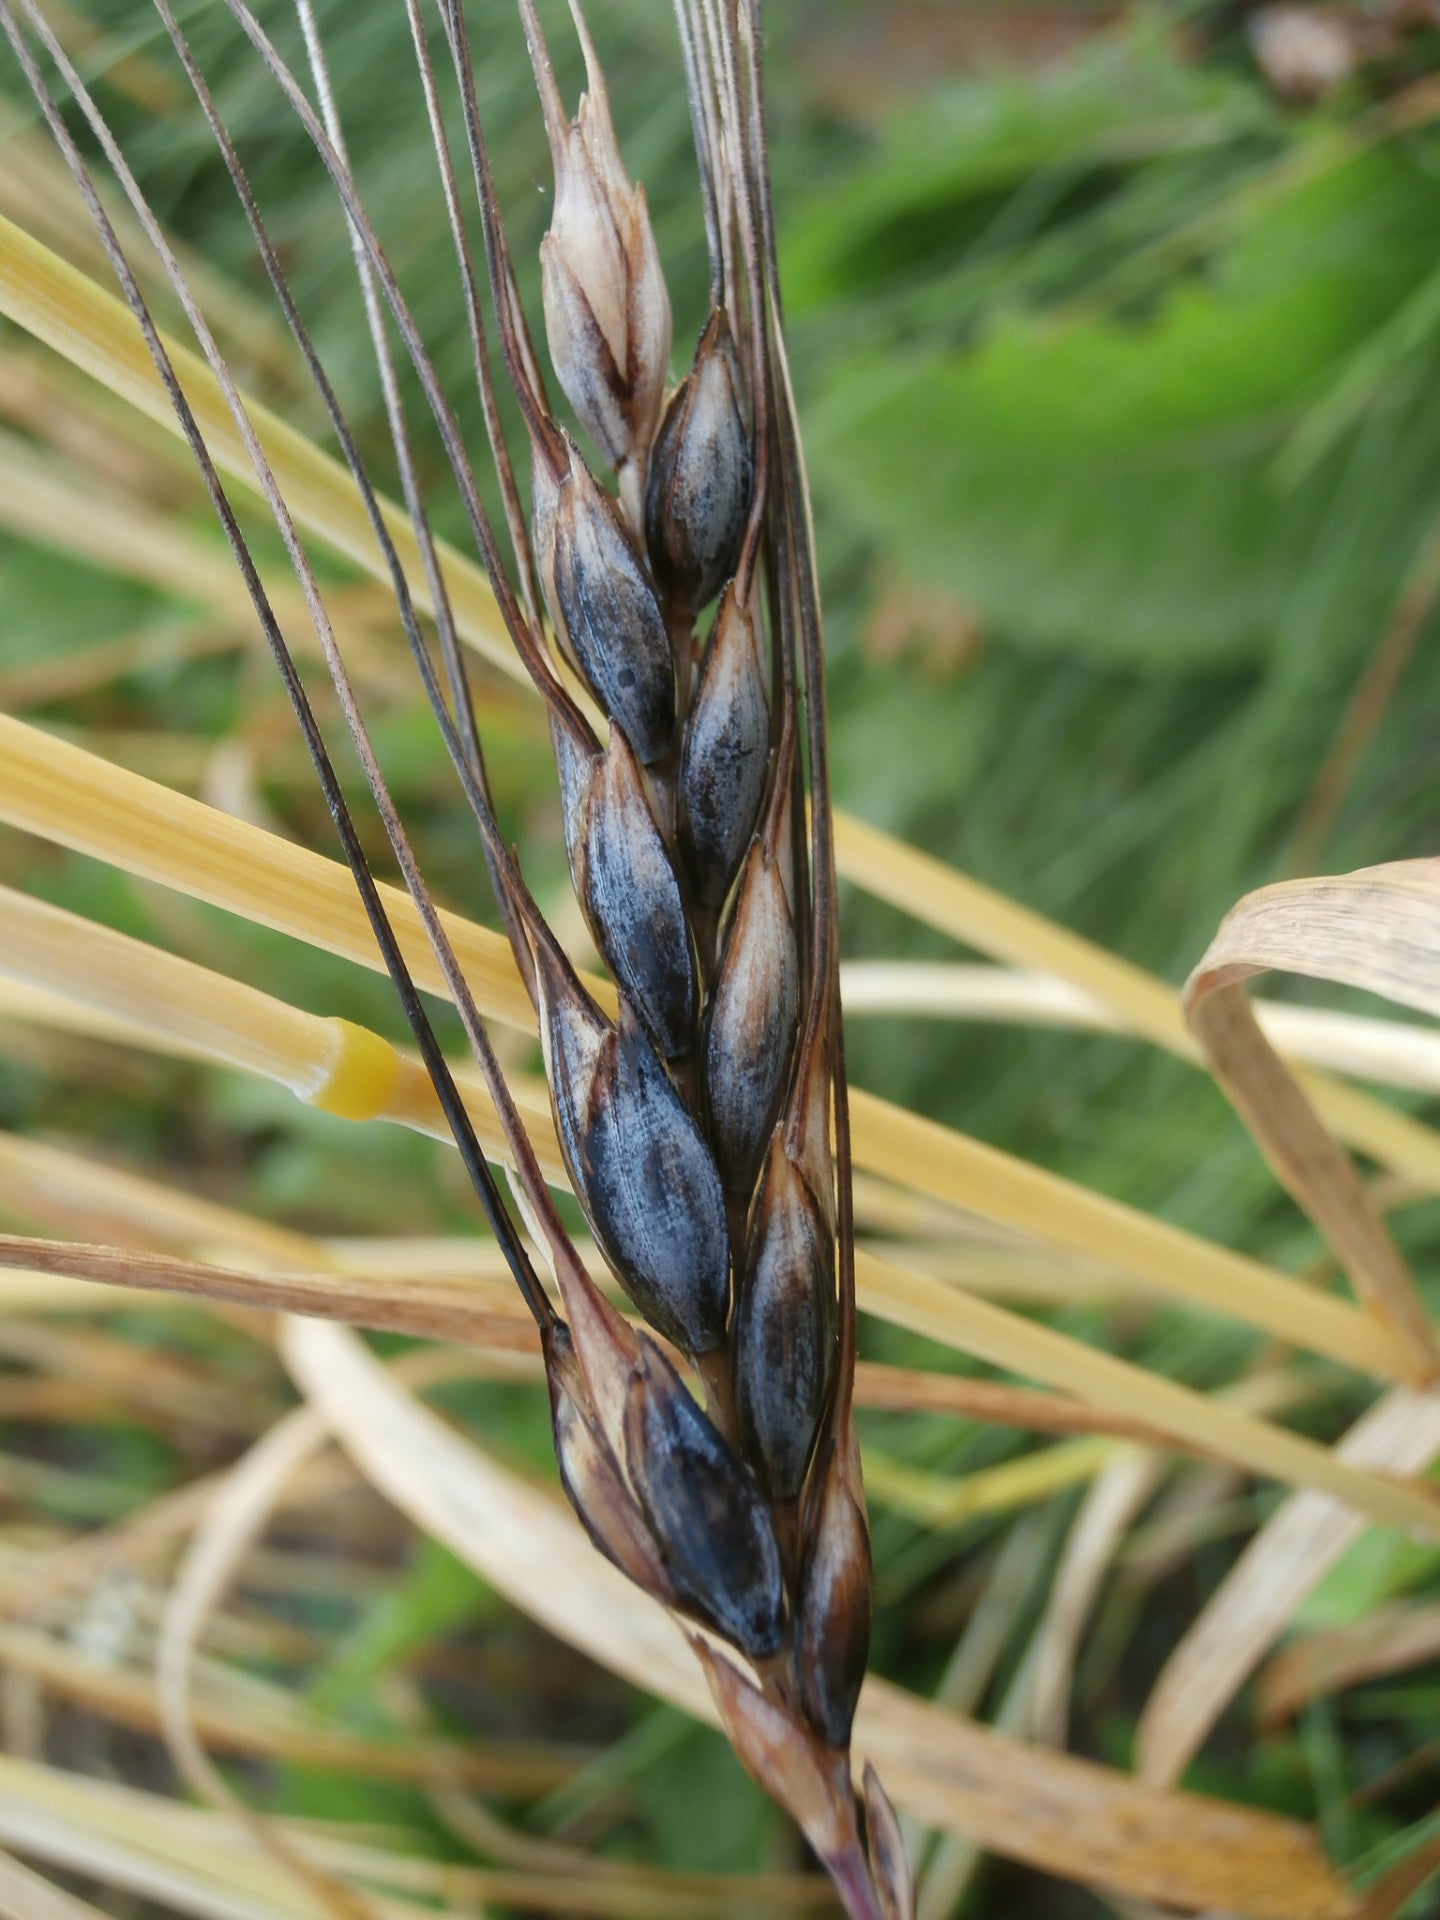 Blue Tinge Ethiopian Wheat